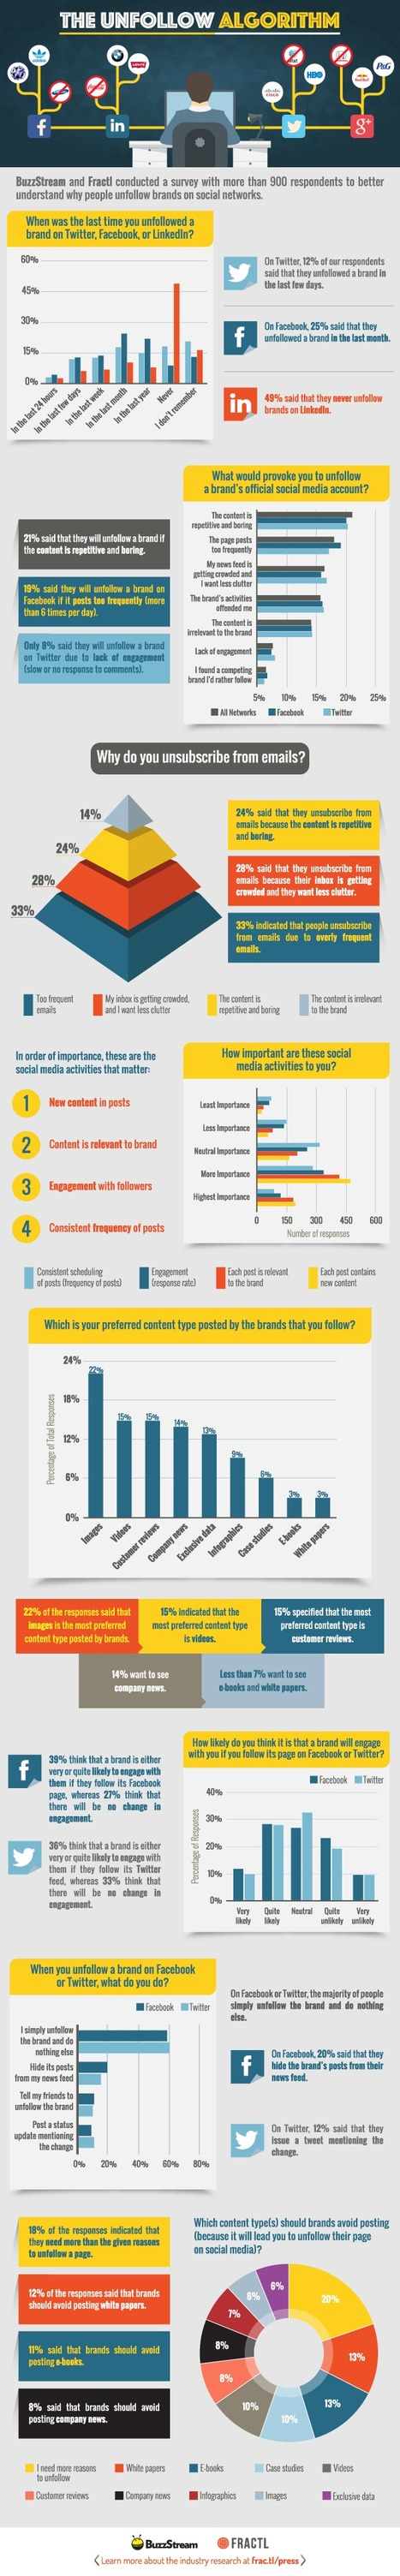 Why People Unfollow on Social Media [Infographic] | visualizing social media | Scoop.it